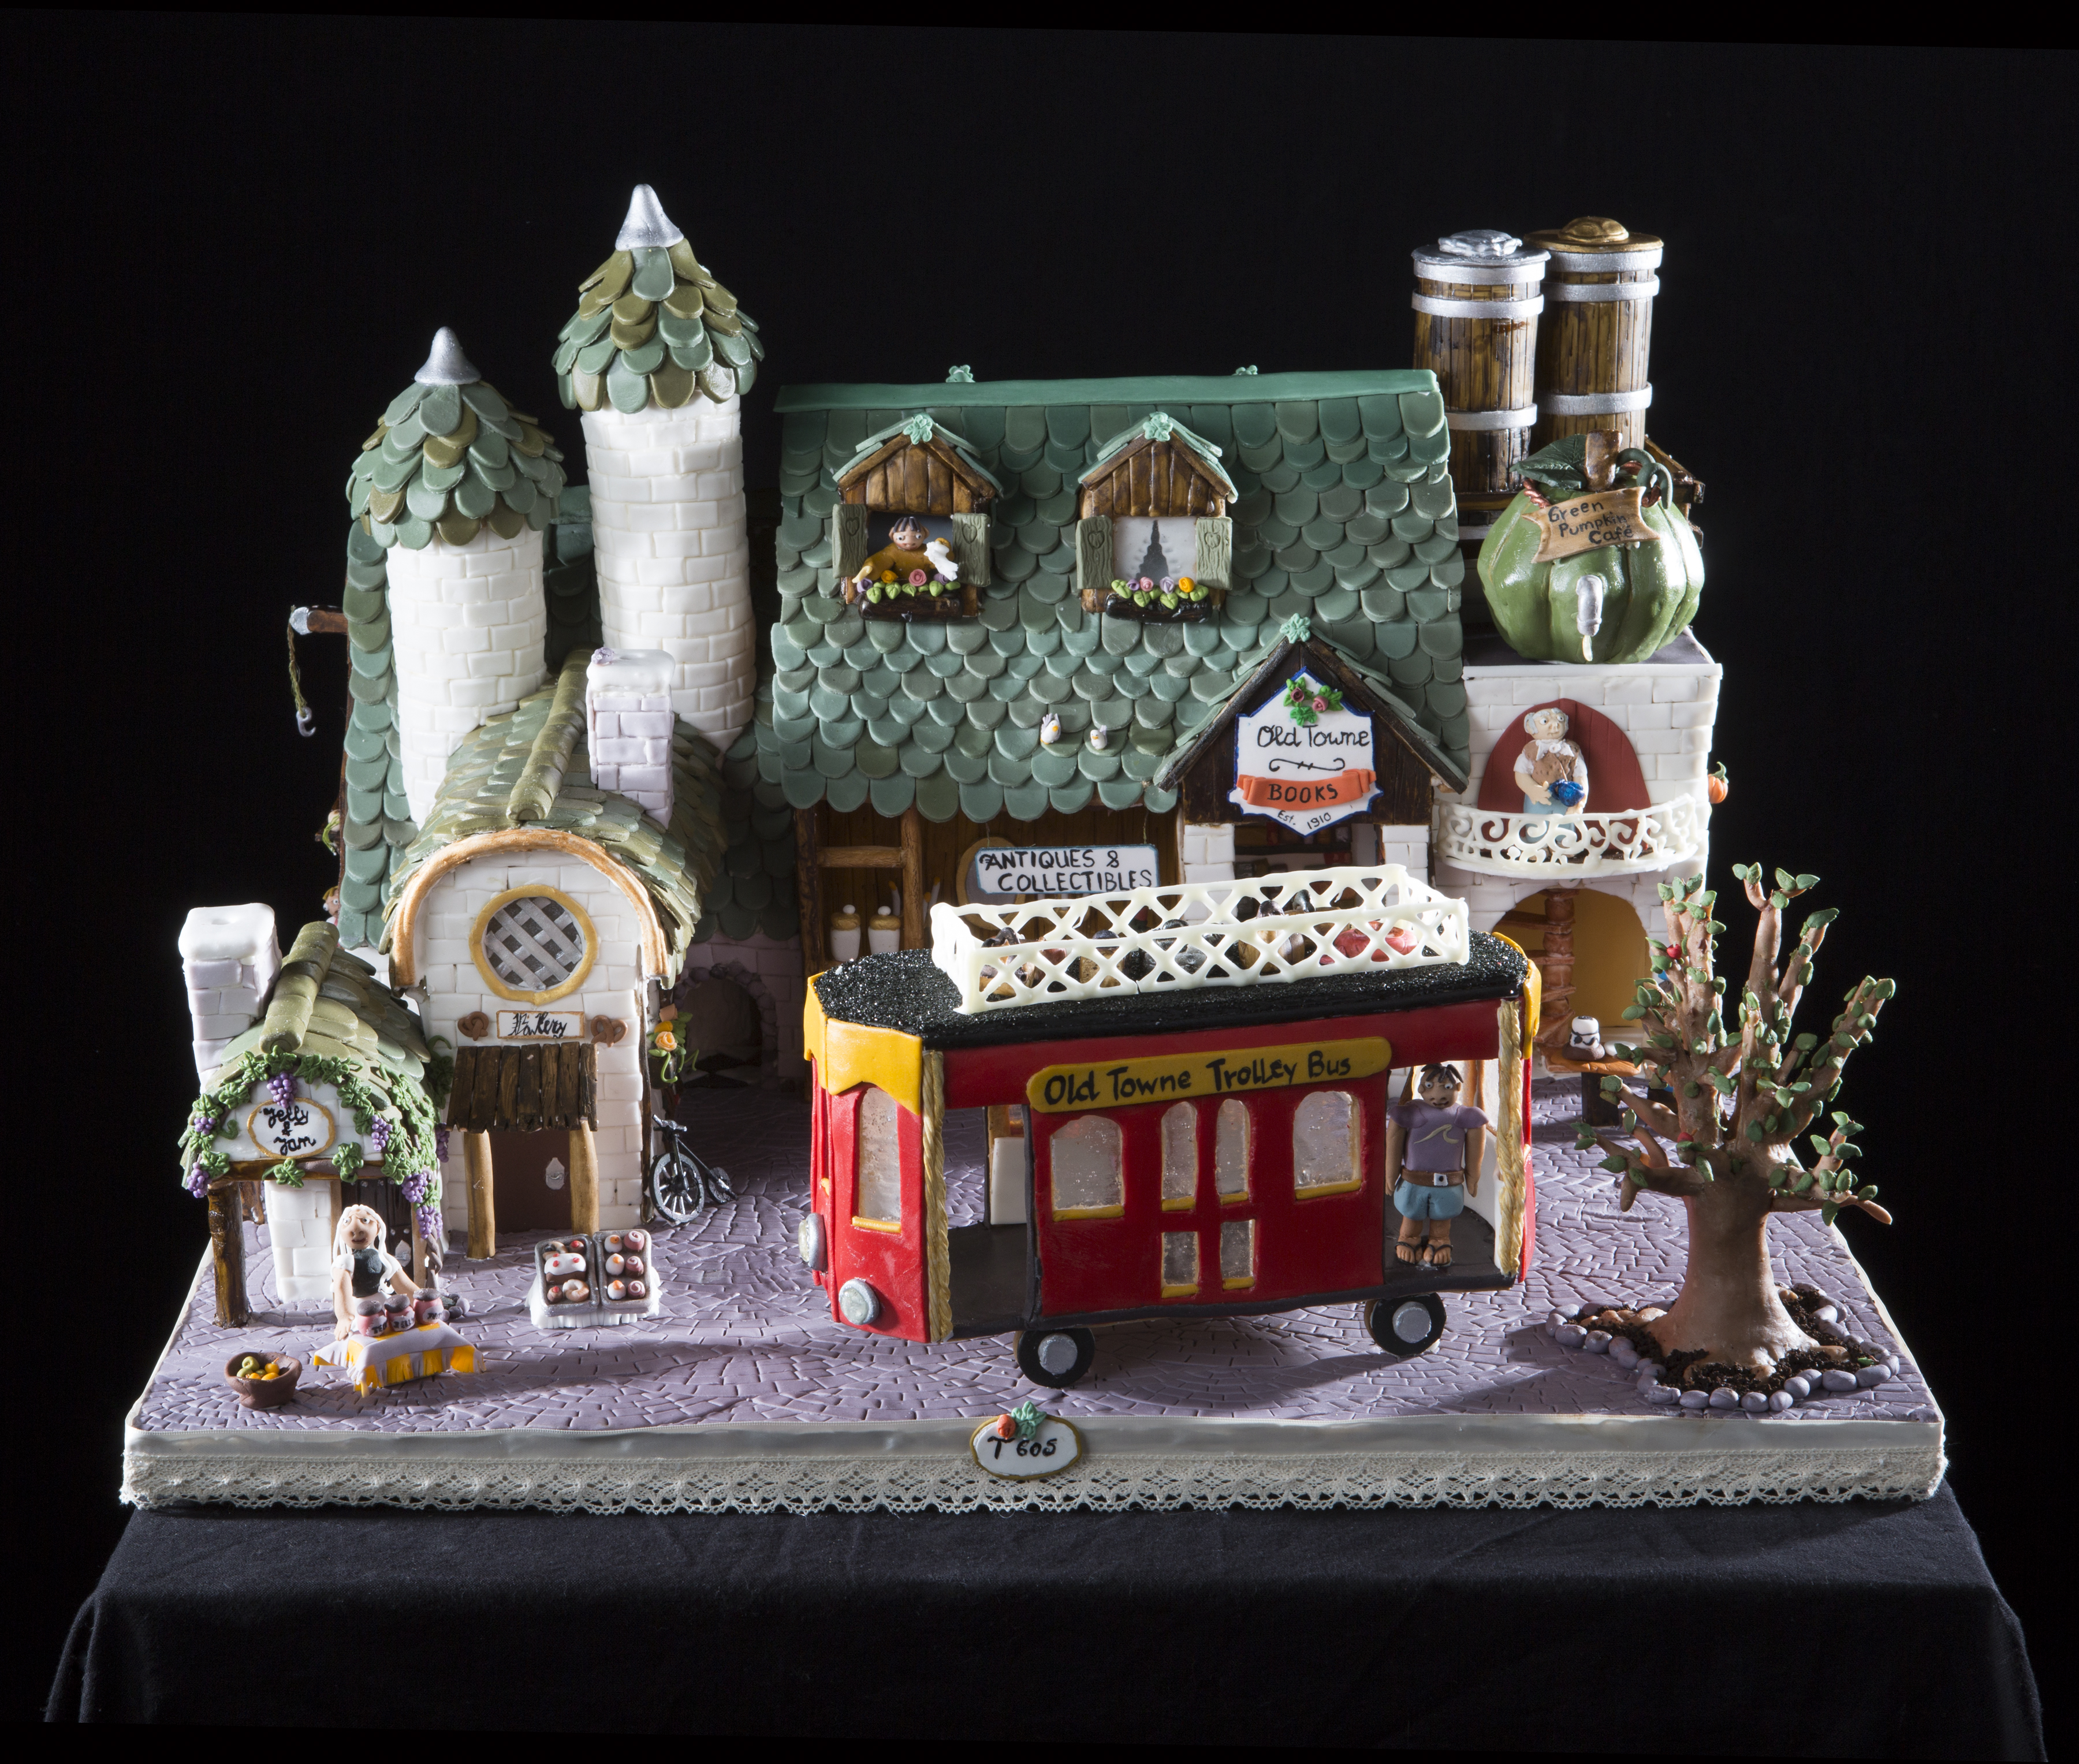 A gingerbread creation of a large green-roofed store with a trolley bus and tree in front.